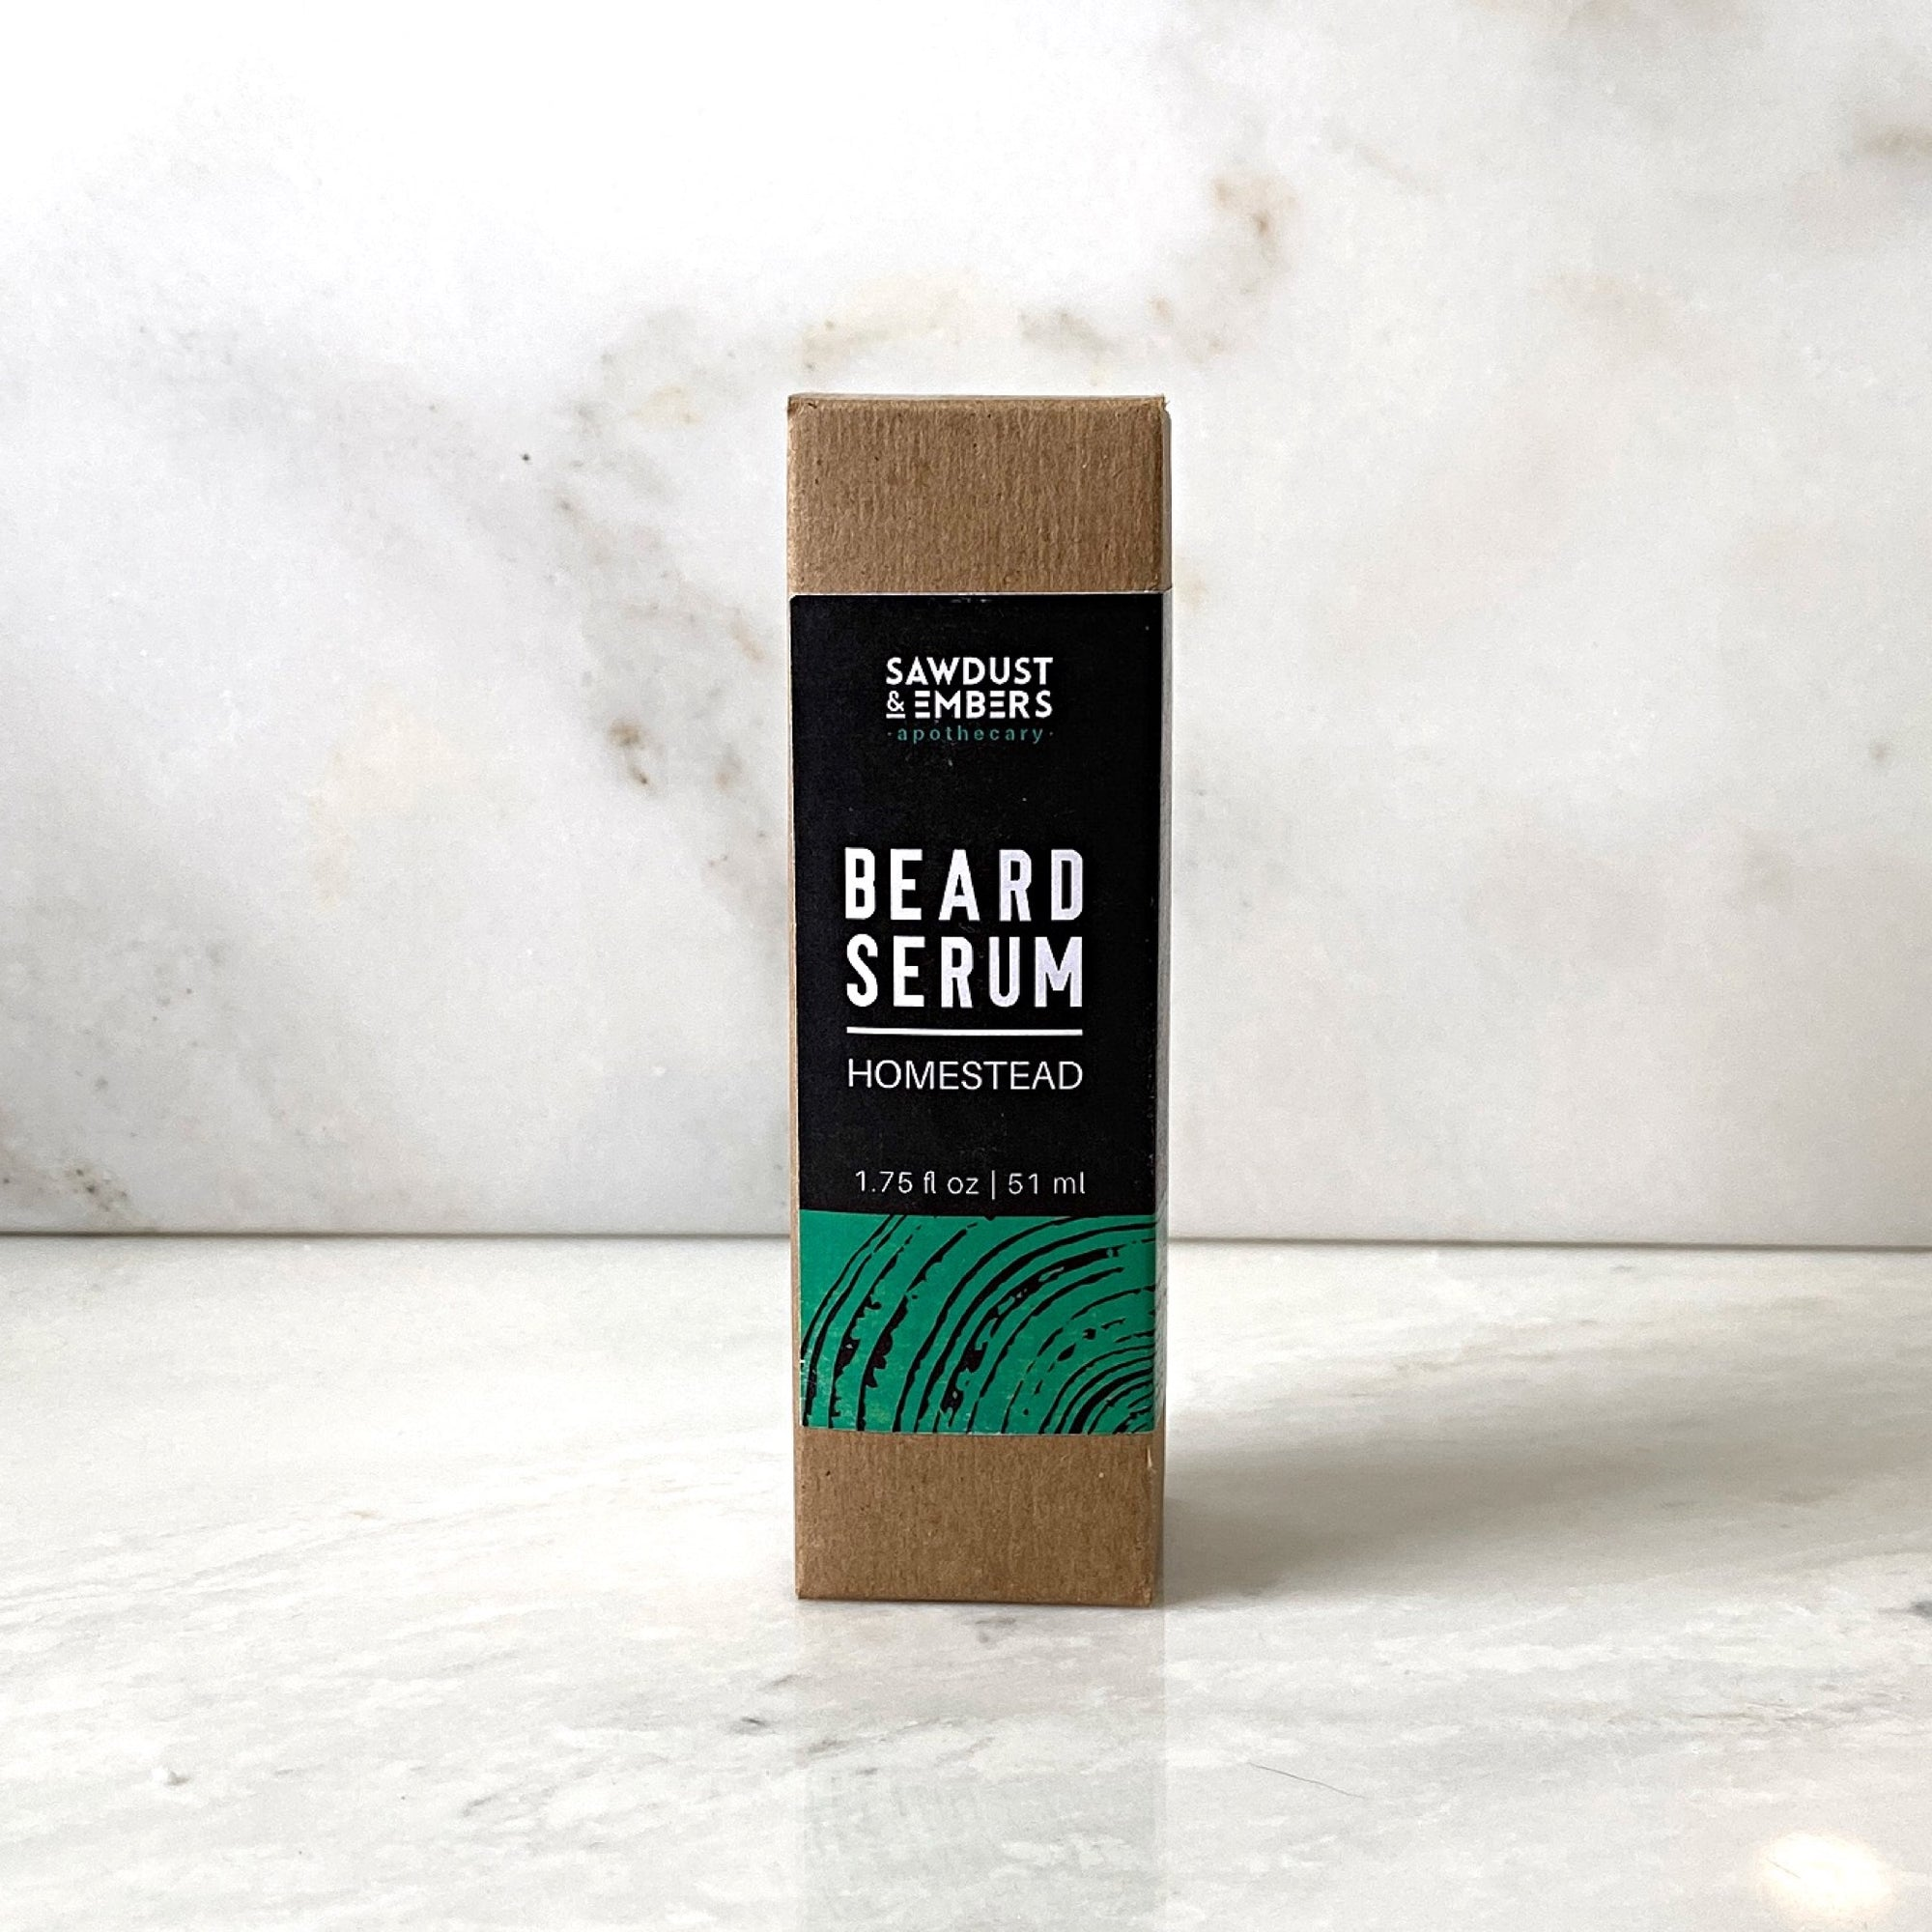 Homestead Beard Serum